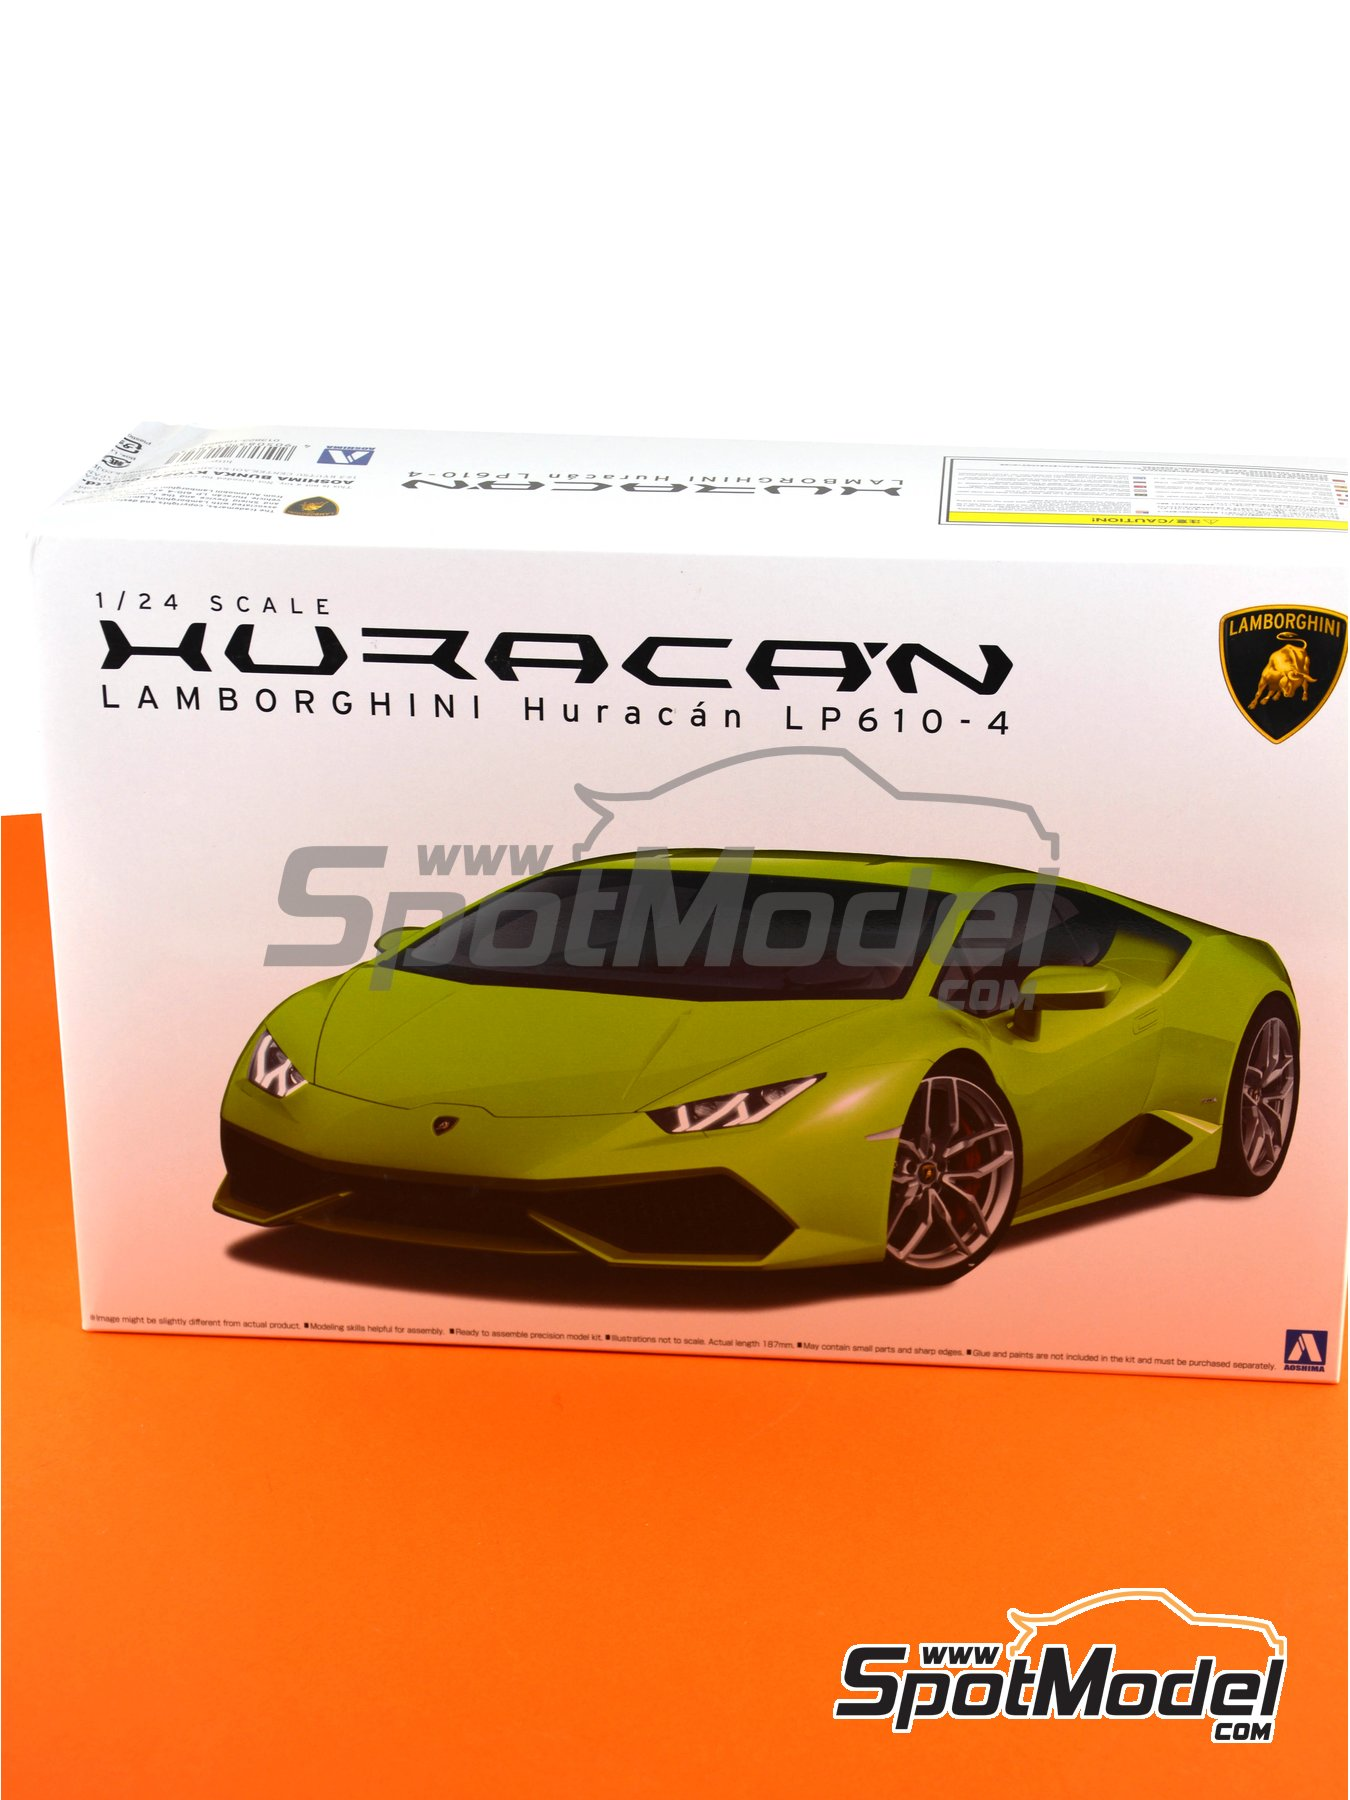 Lamborghini Huracan LP610 4 | Model Car Kit In 1/24 Scale Manufactured By